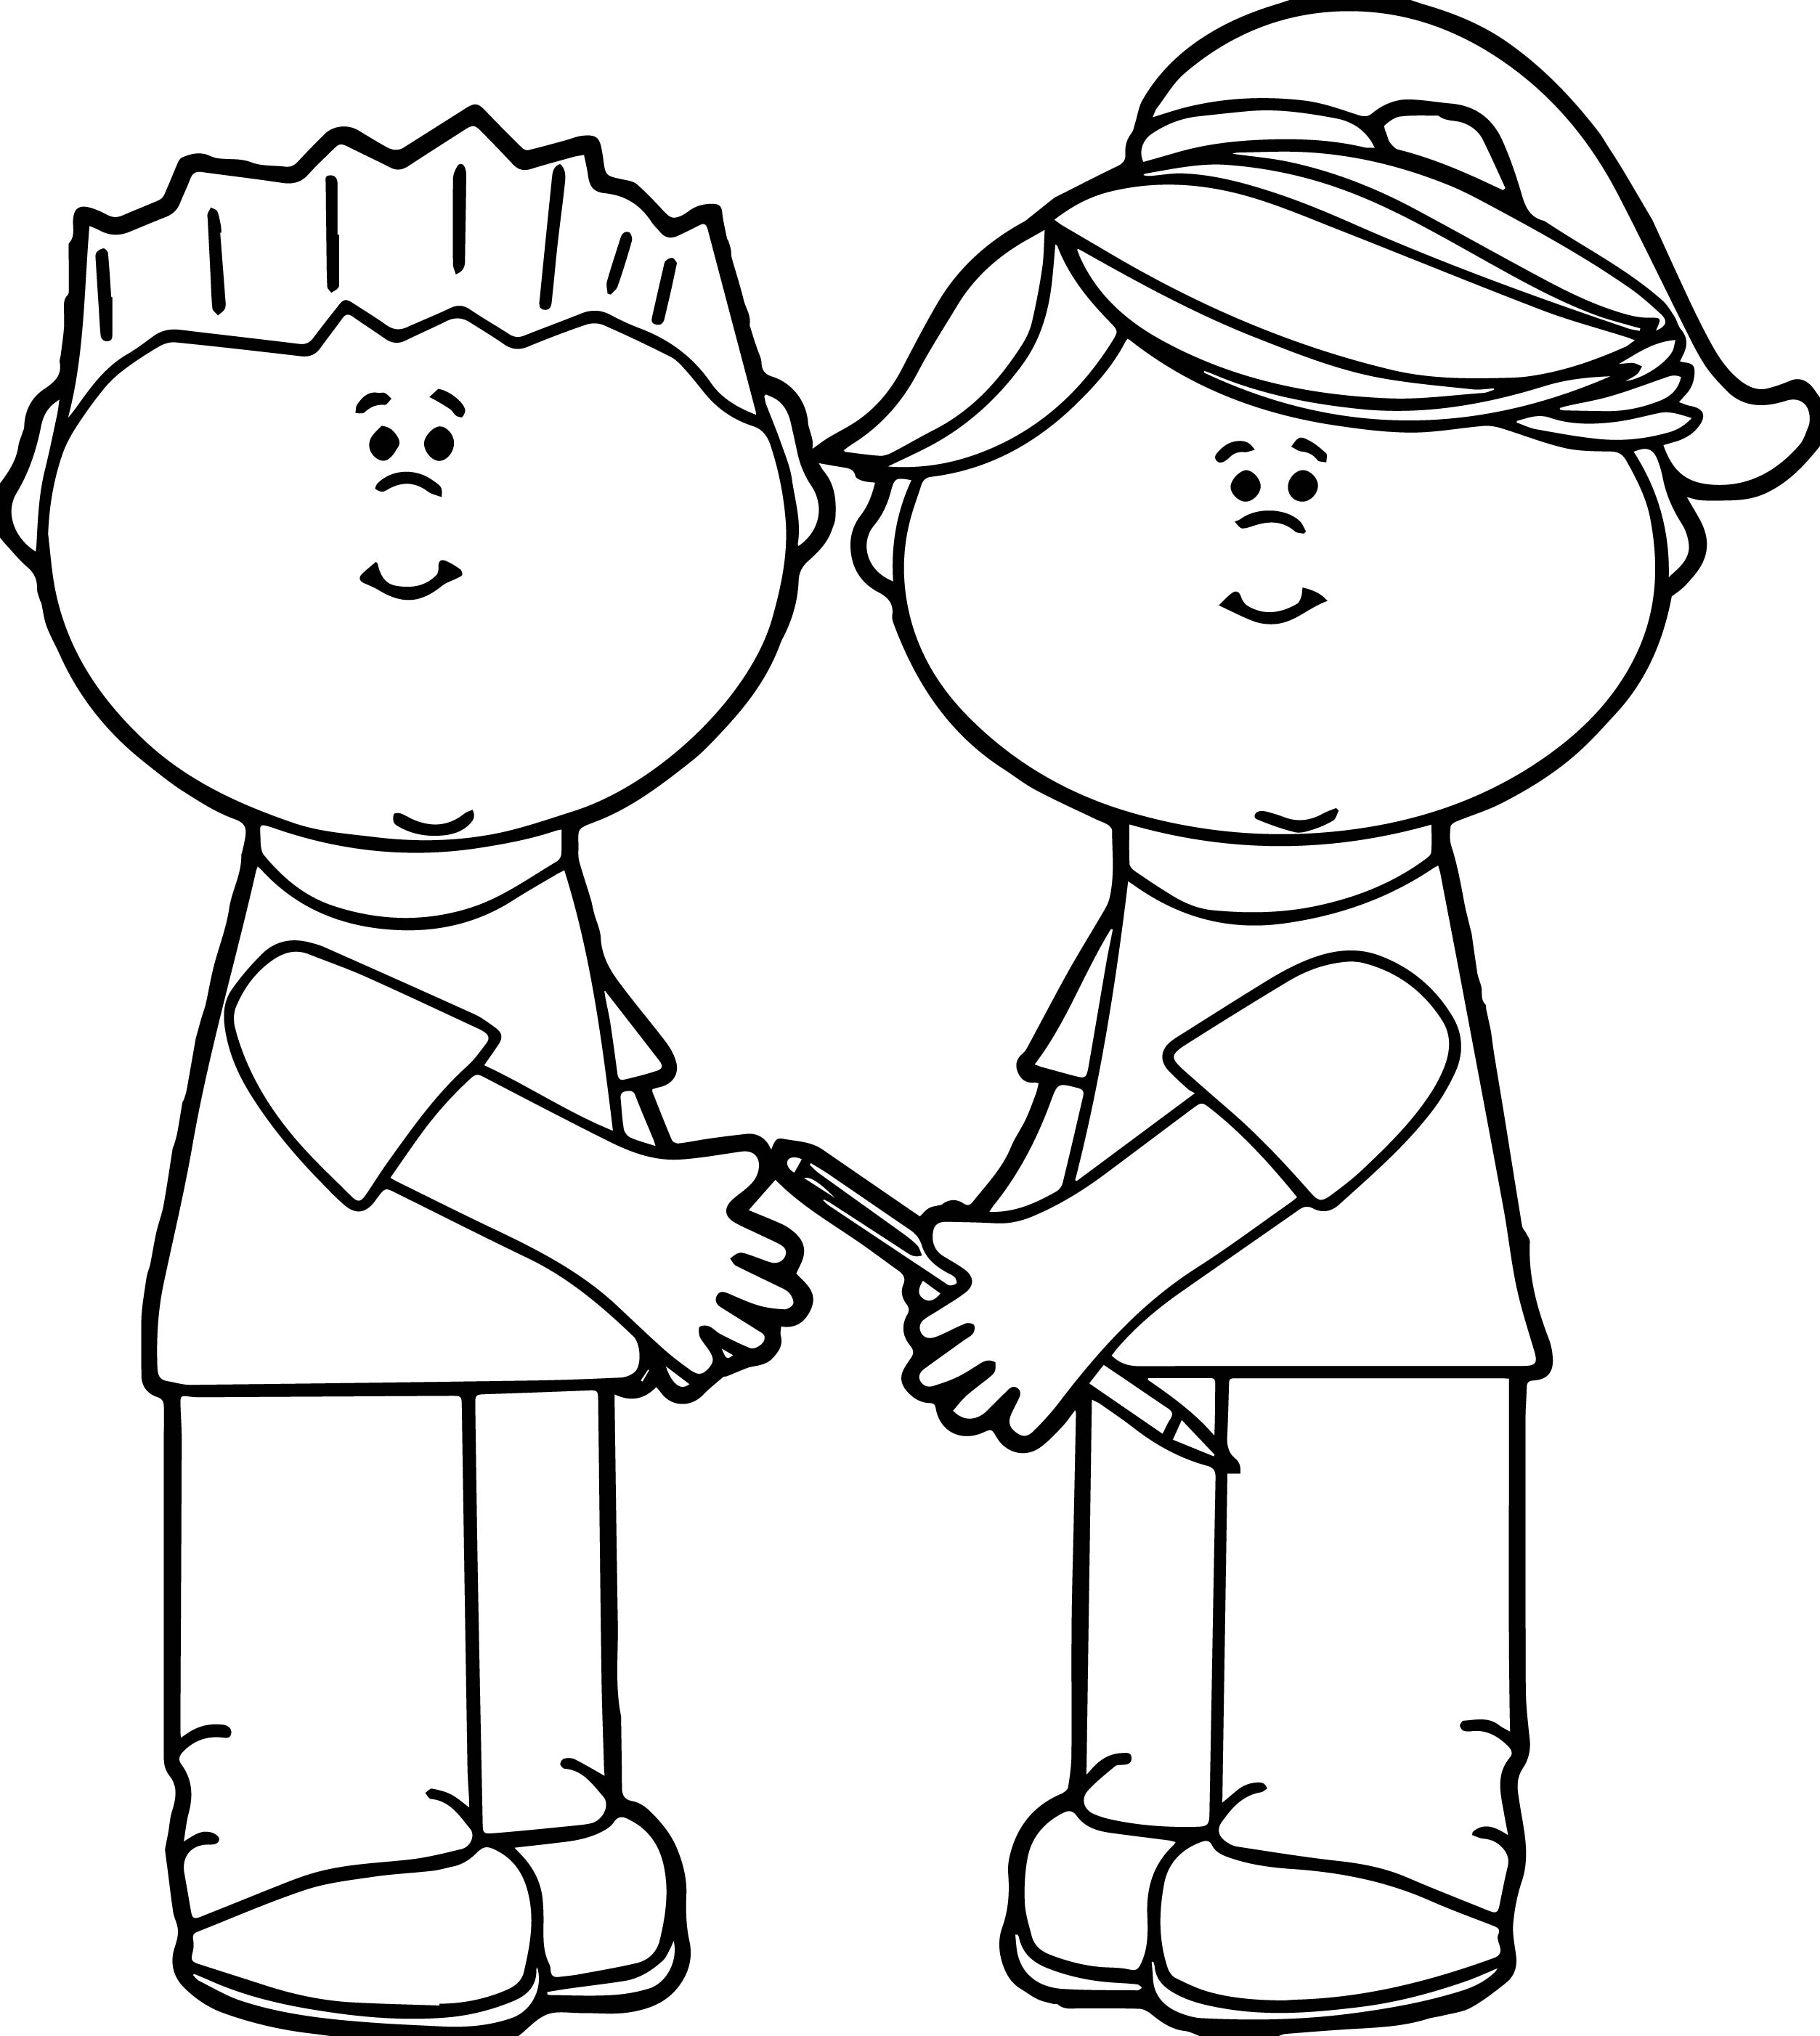 coloring pages toddler - photo#6